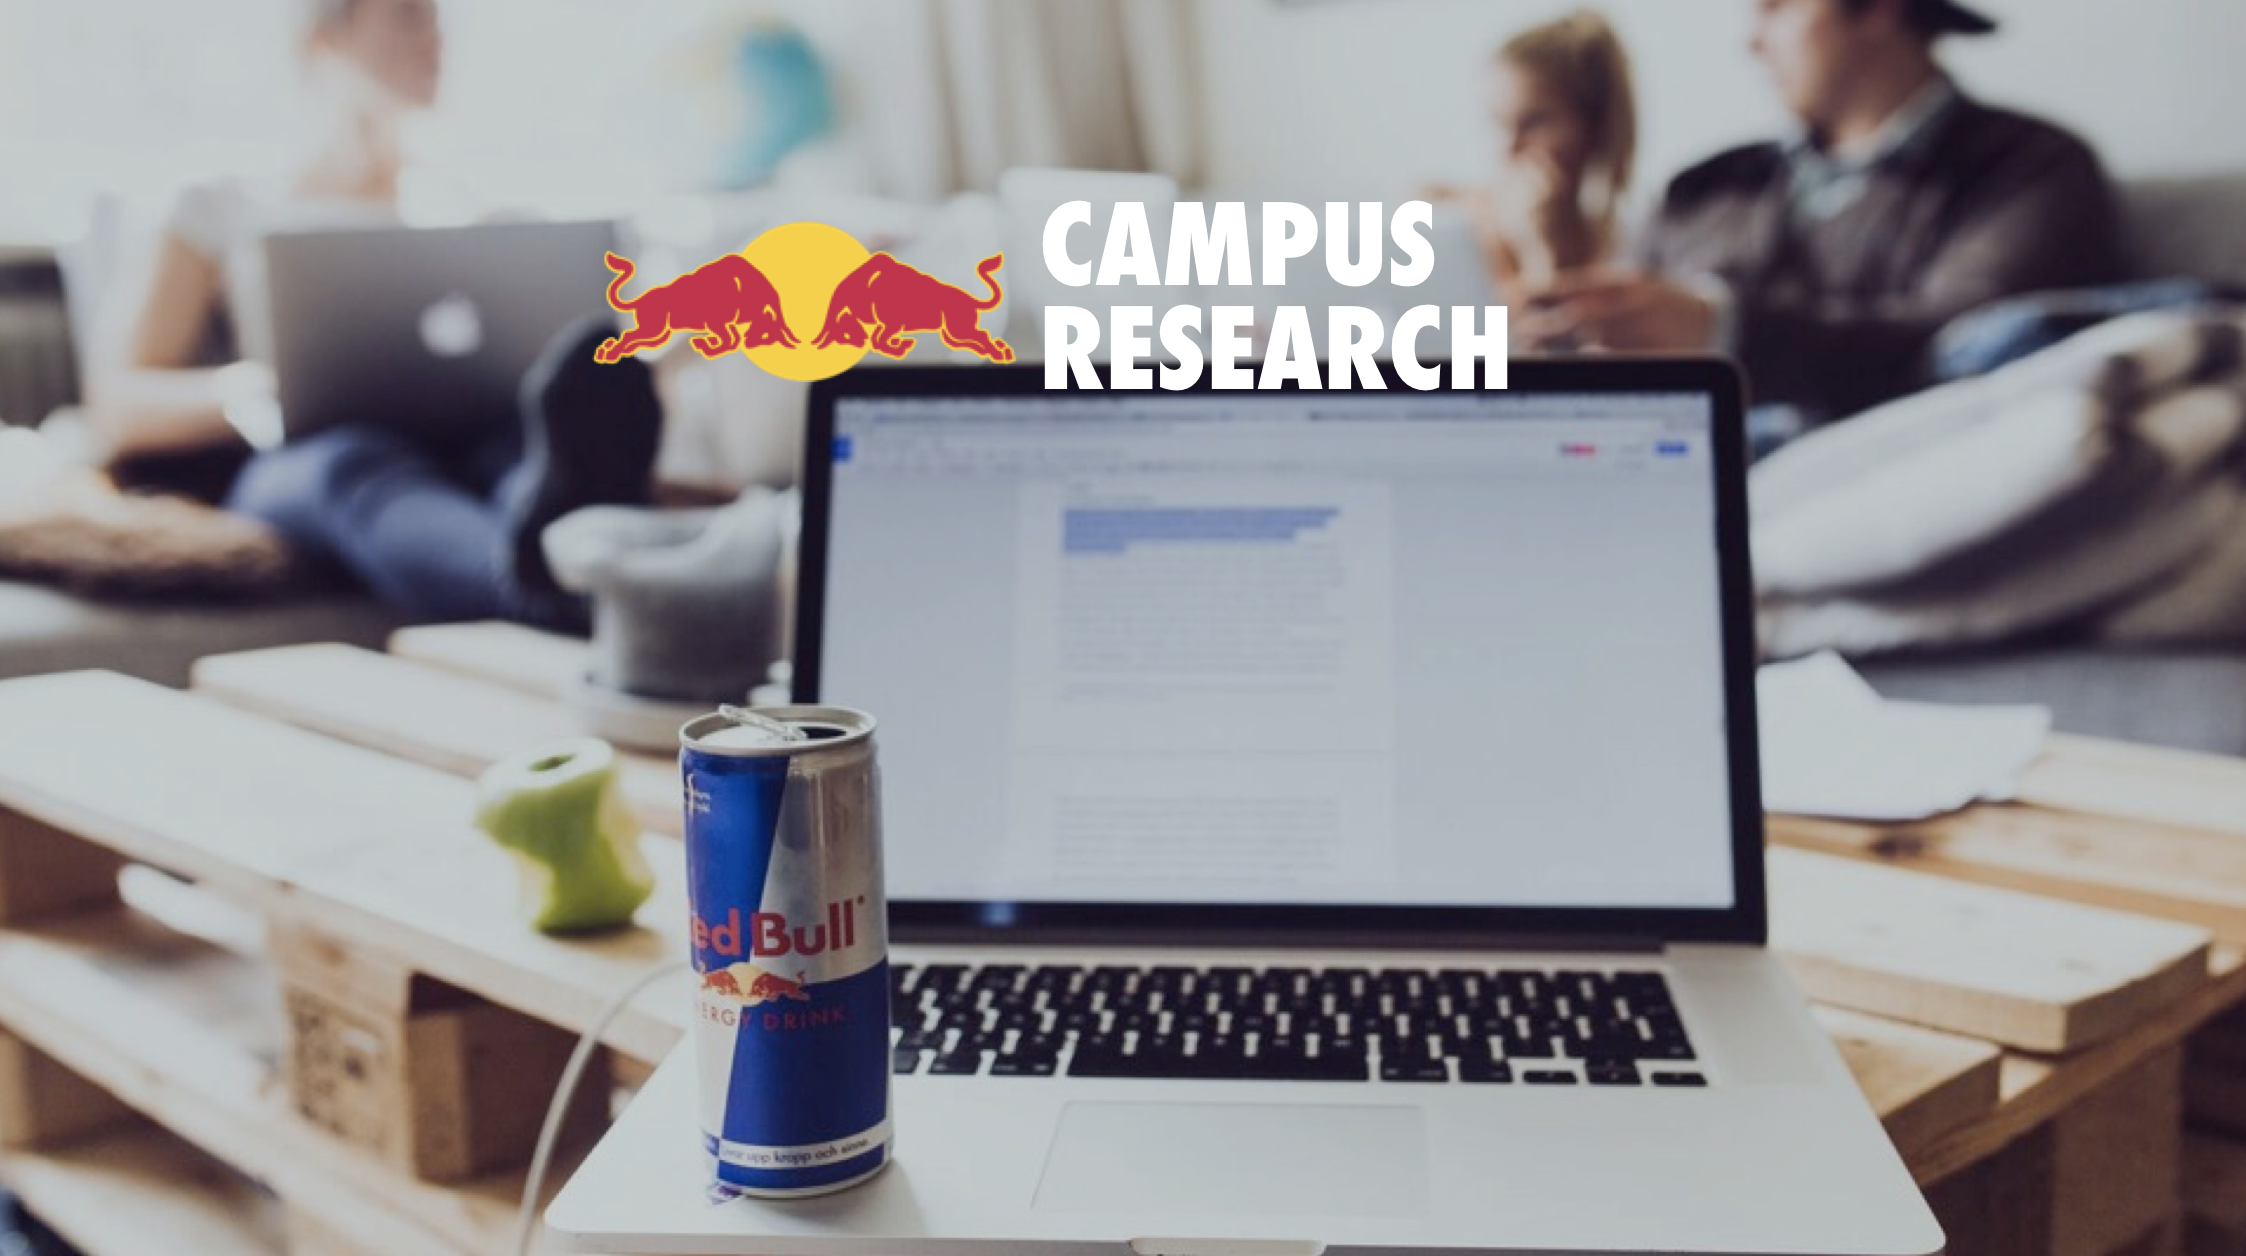 A better understanding of consumption trends on campus.